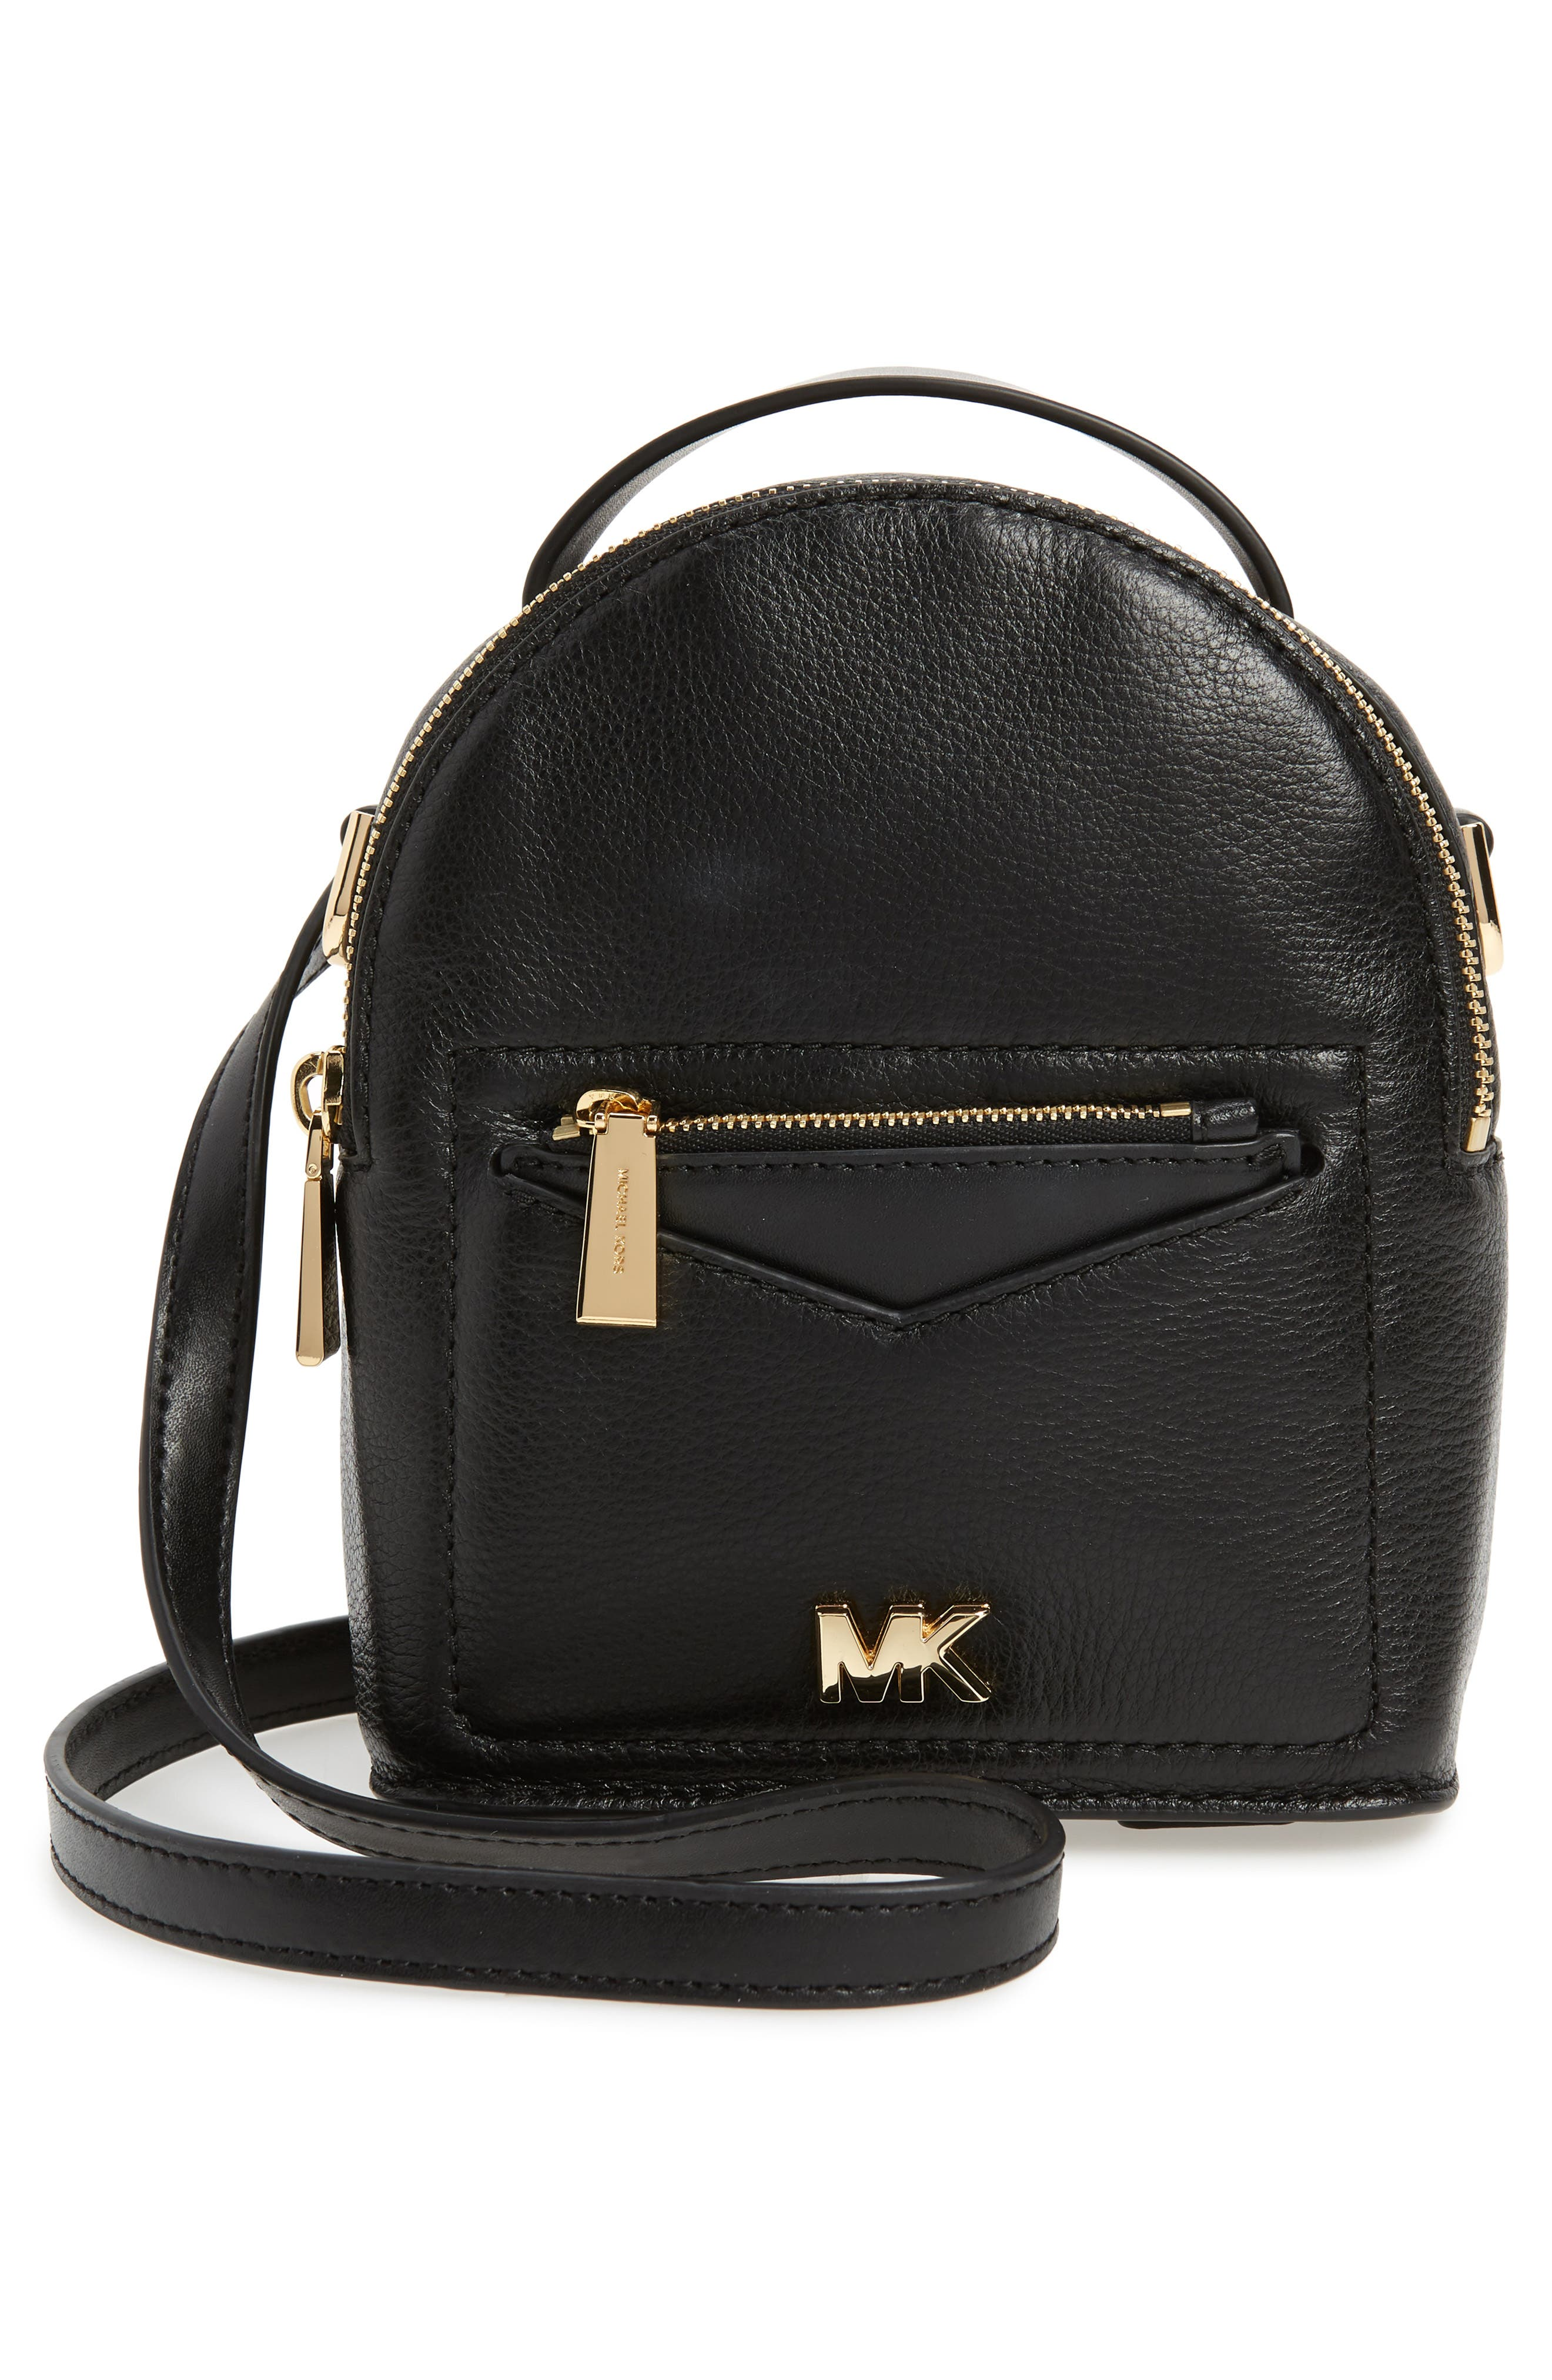 X-Small Convertible Leather Backpack,                             Alternate thumbnail 5, color,                             Black